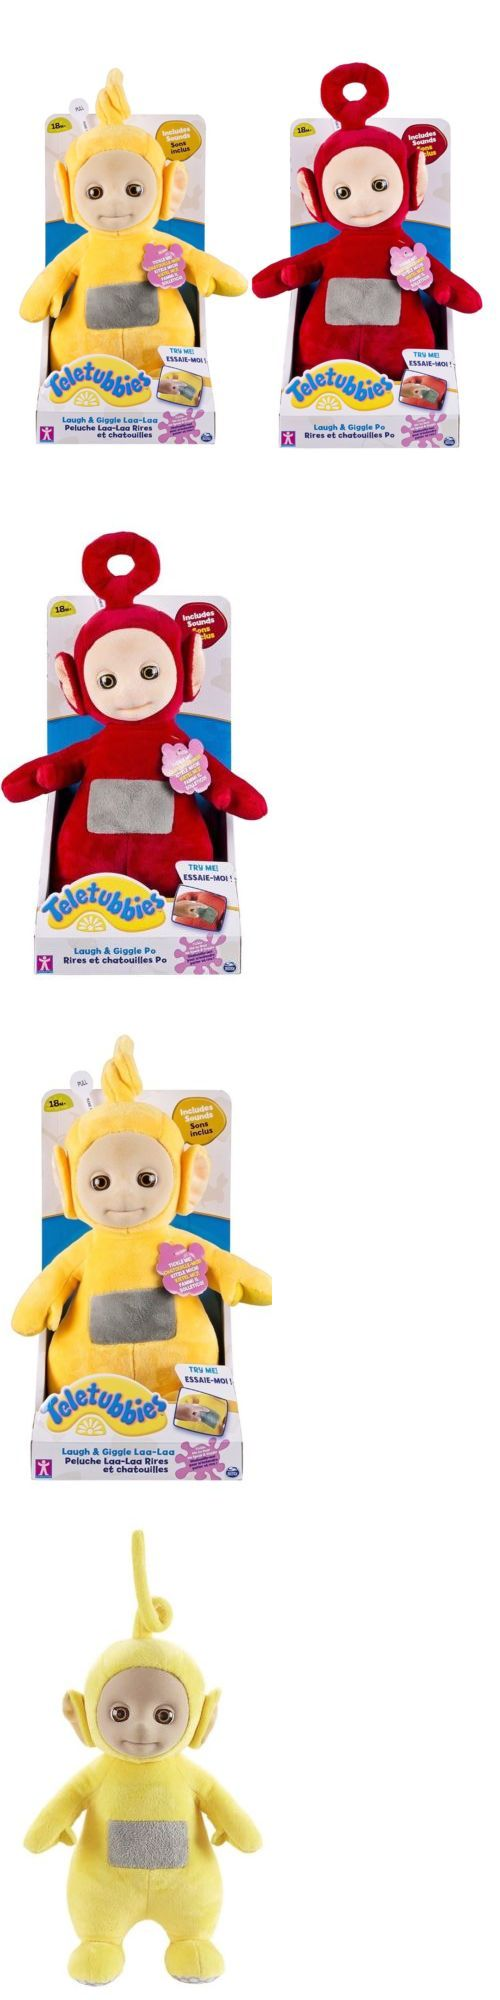 Teletubbies 756: 2 Teletubbies 10 Tickle Laugh And Giggle Stuffed Plush Po And Laa-Laa Red Yellow -> BUY IT NOW ONLY: $31.45 on eBay!